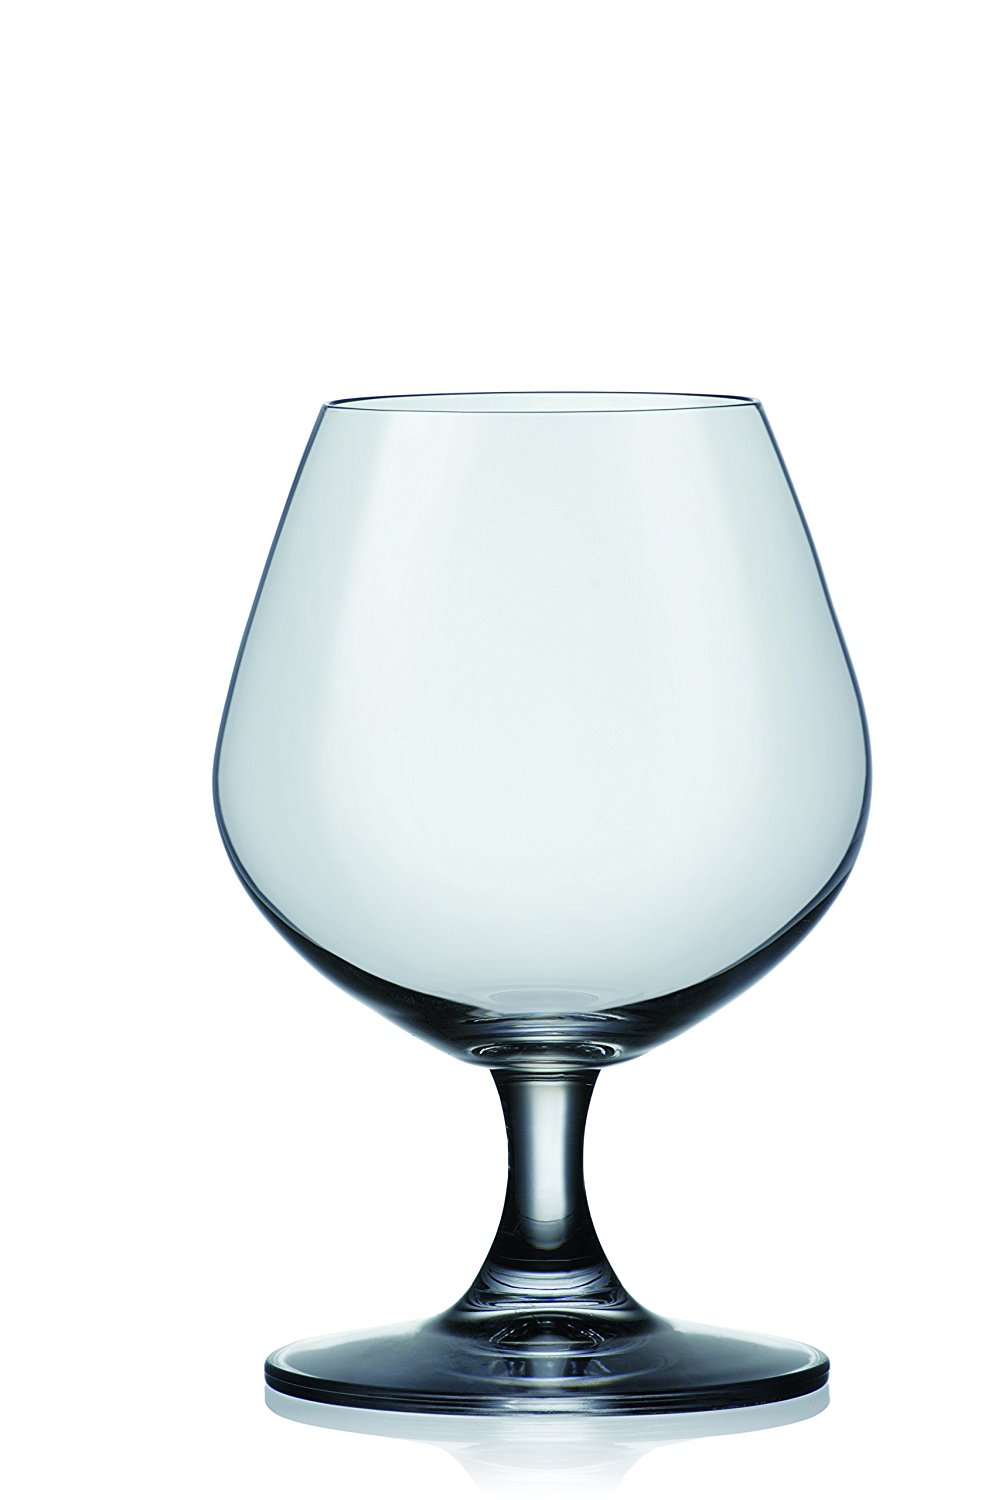 Crystalex Bolero Brandy Snifter Glasses, Classic Design, 14-Ounce, Set of 6 by